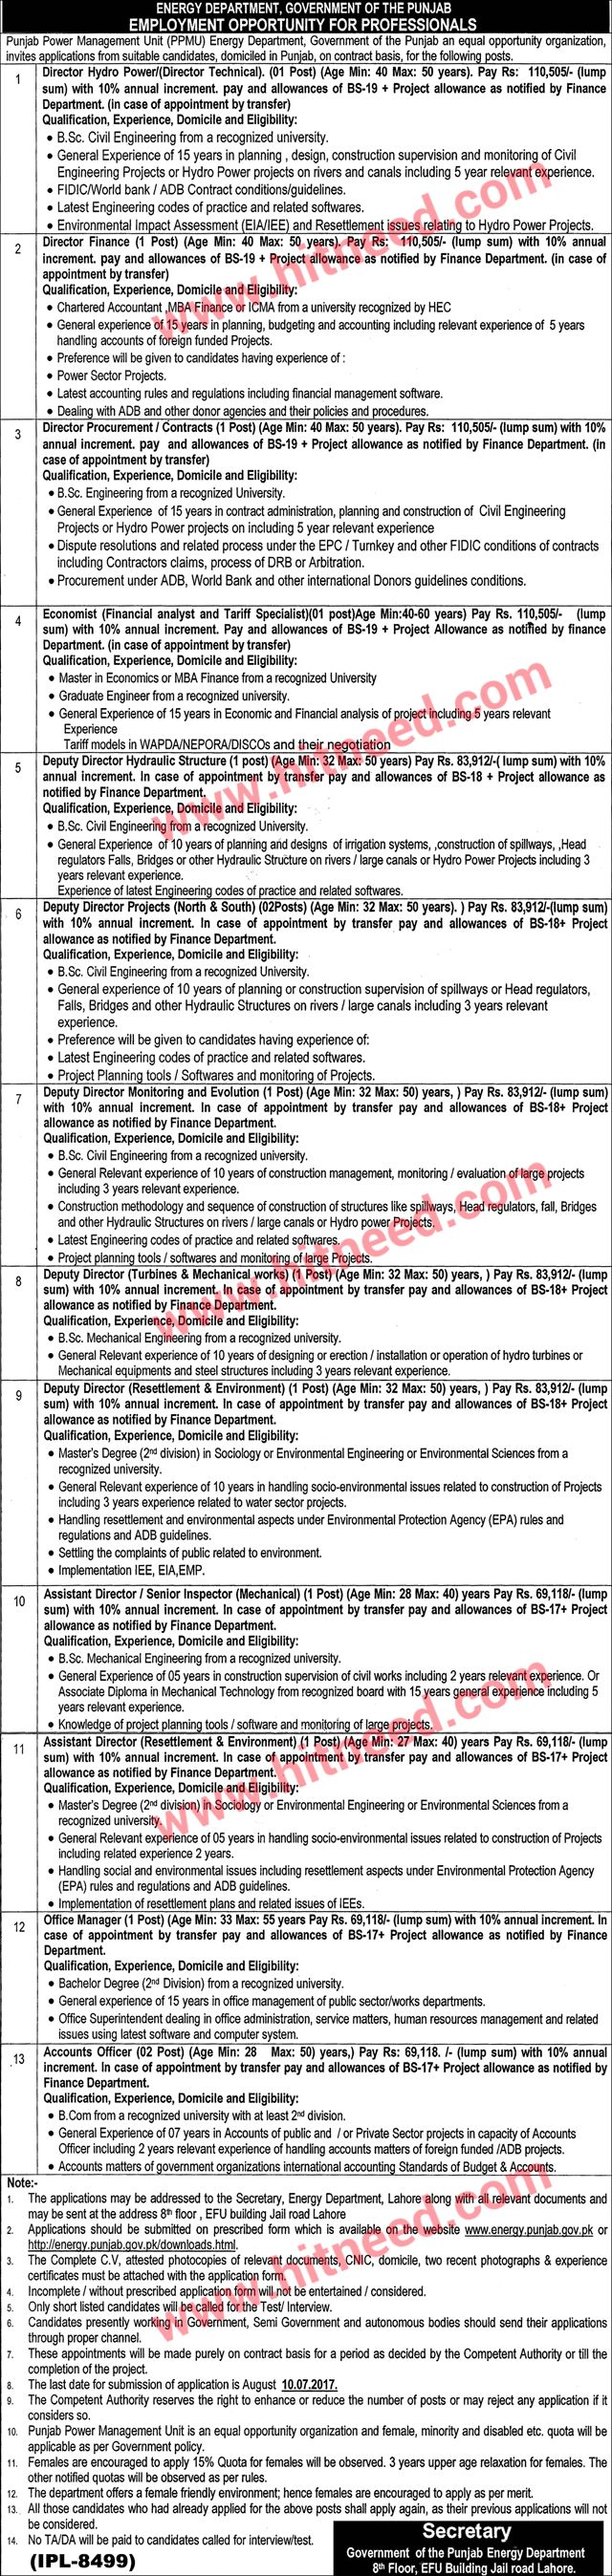 Energy Department, Government of Punjab, Director Hydro Power and Other Jobs, Jun 2017 Last Date: 10-07-2017   #Accounts Officer #Assistant Director #Deputy Director #Director Finance #Director Technical #Energy Sector Jobs #Lahore Jobs #Office Manager